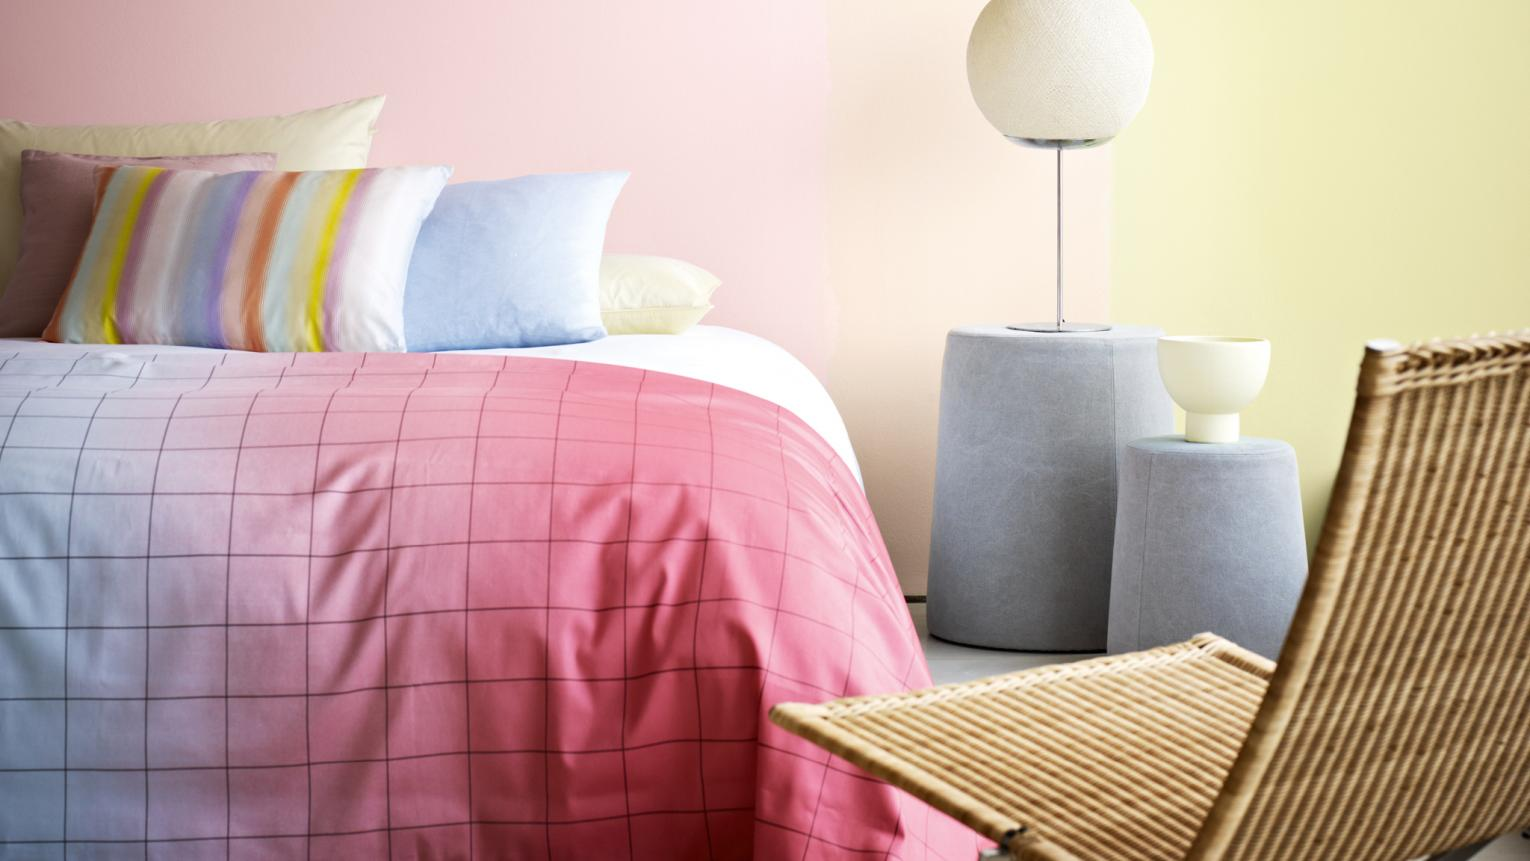 Colour can offer up a quick cure for tired minds, and help you wake up feeling revived and ready to face the new day.